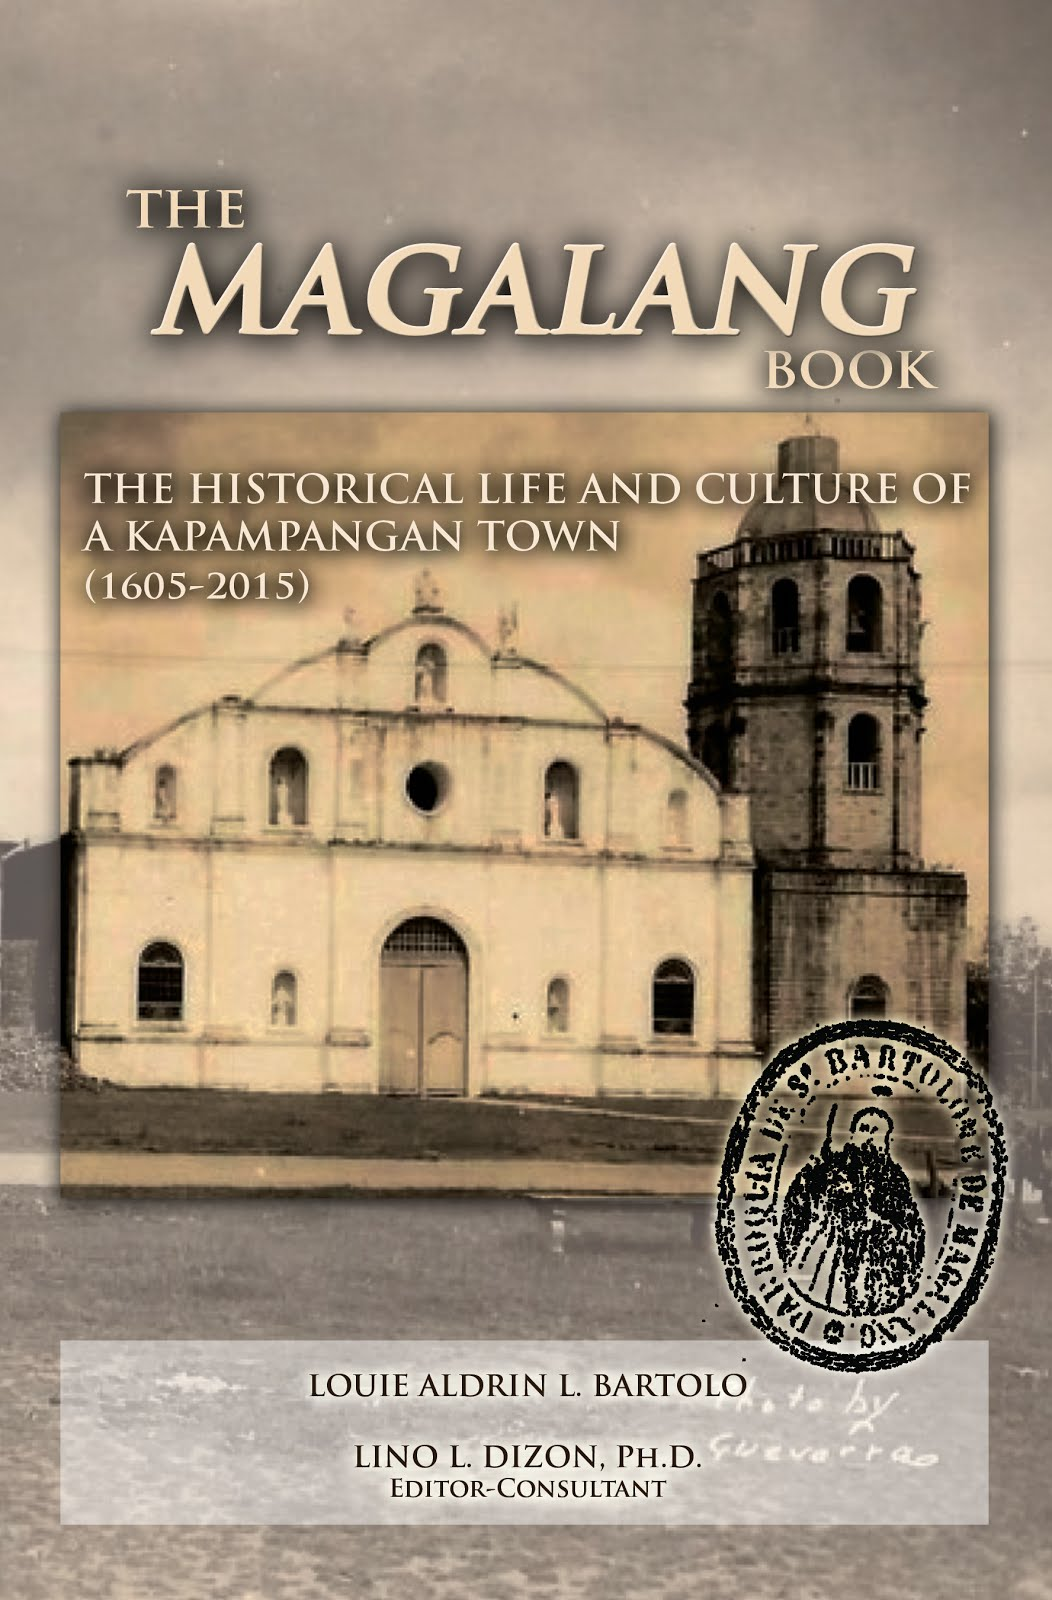 THE MAGALANG BOOK